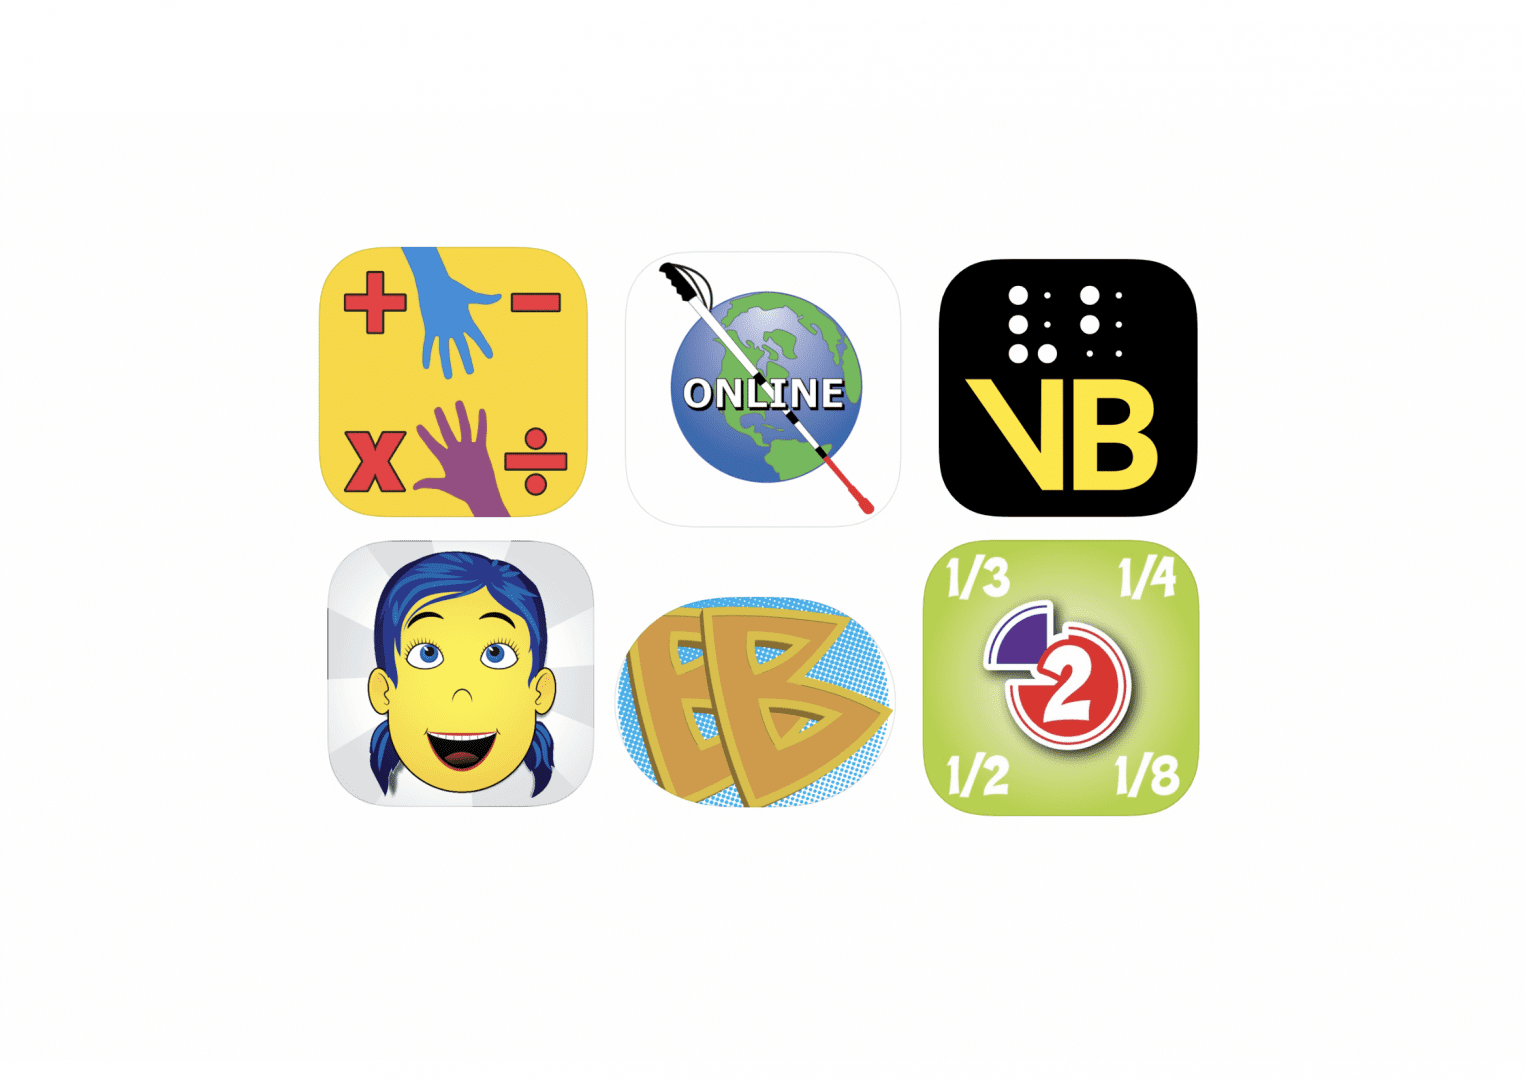 6 app icons for the apps described in the blog